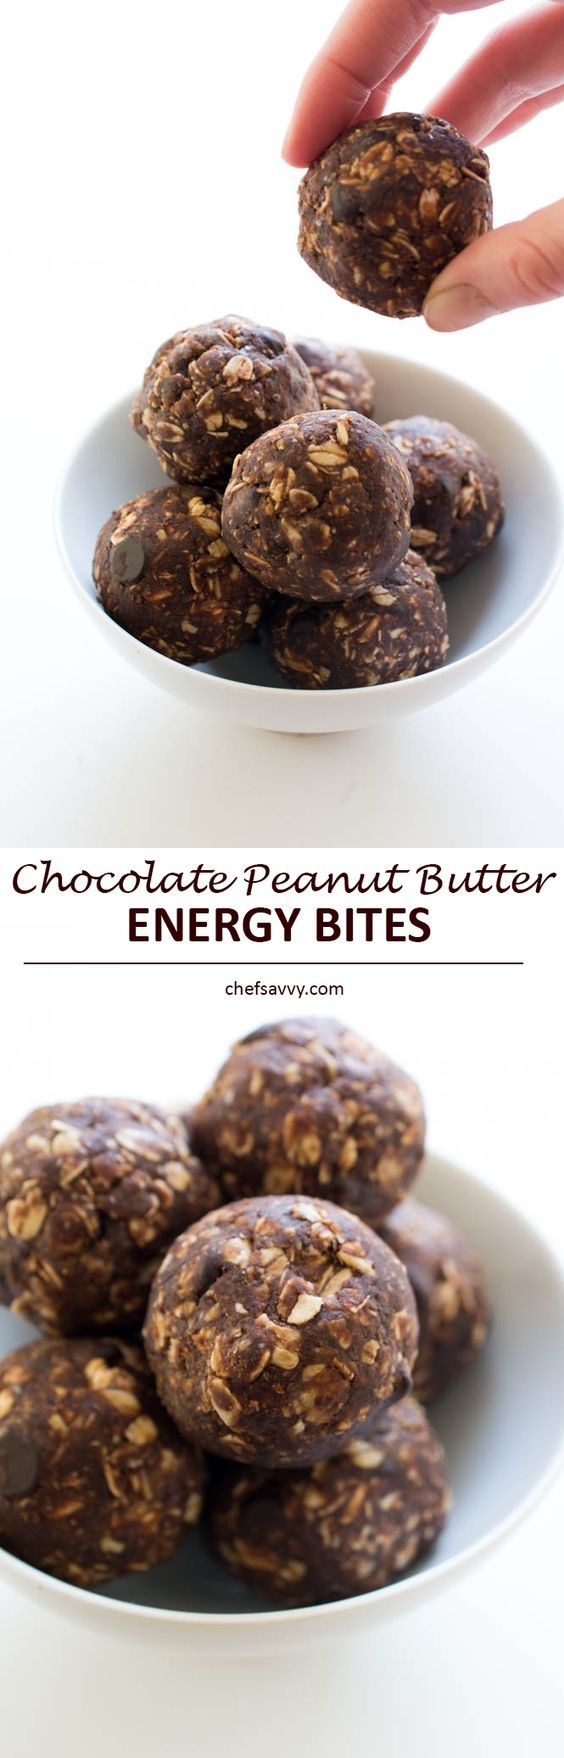 No Bake Chocolate Peanut Butter Energy Bites. Loaded with old fashioned oats, peanut butter, protein powder and flax seed. A healthy on the go protein packed snack!   chefsavvy.com #recipe #energy #protein #snack